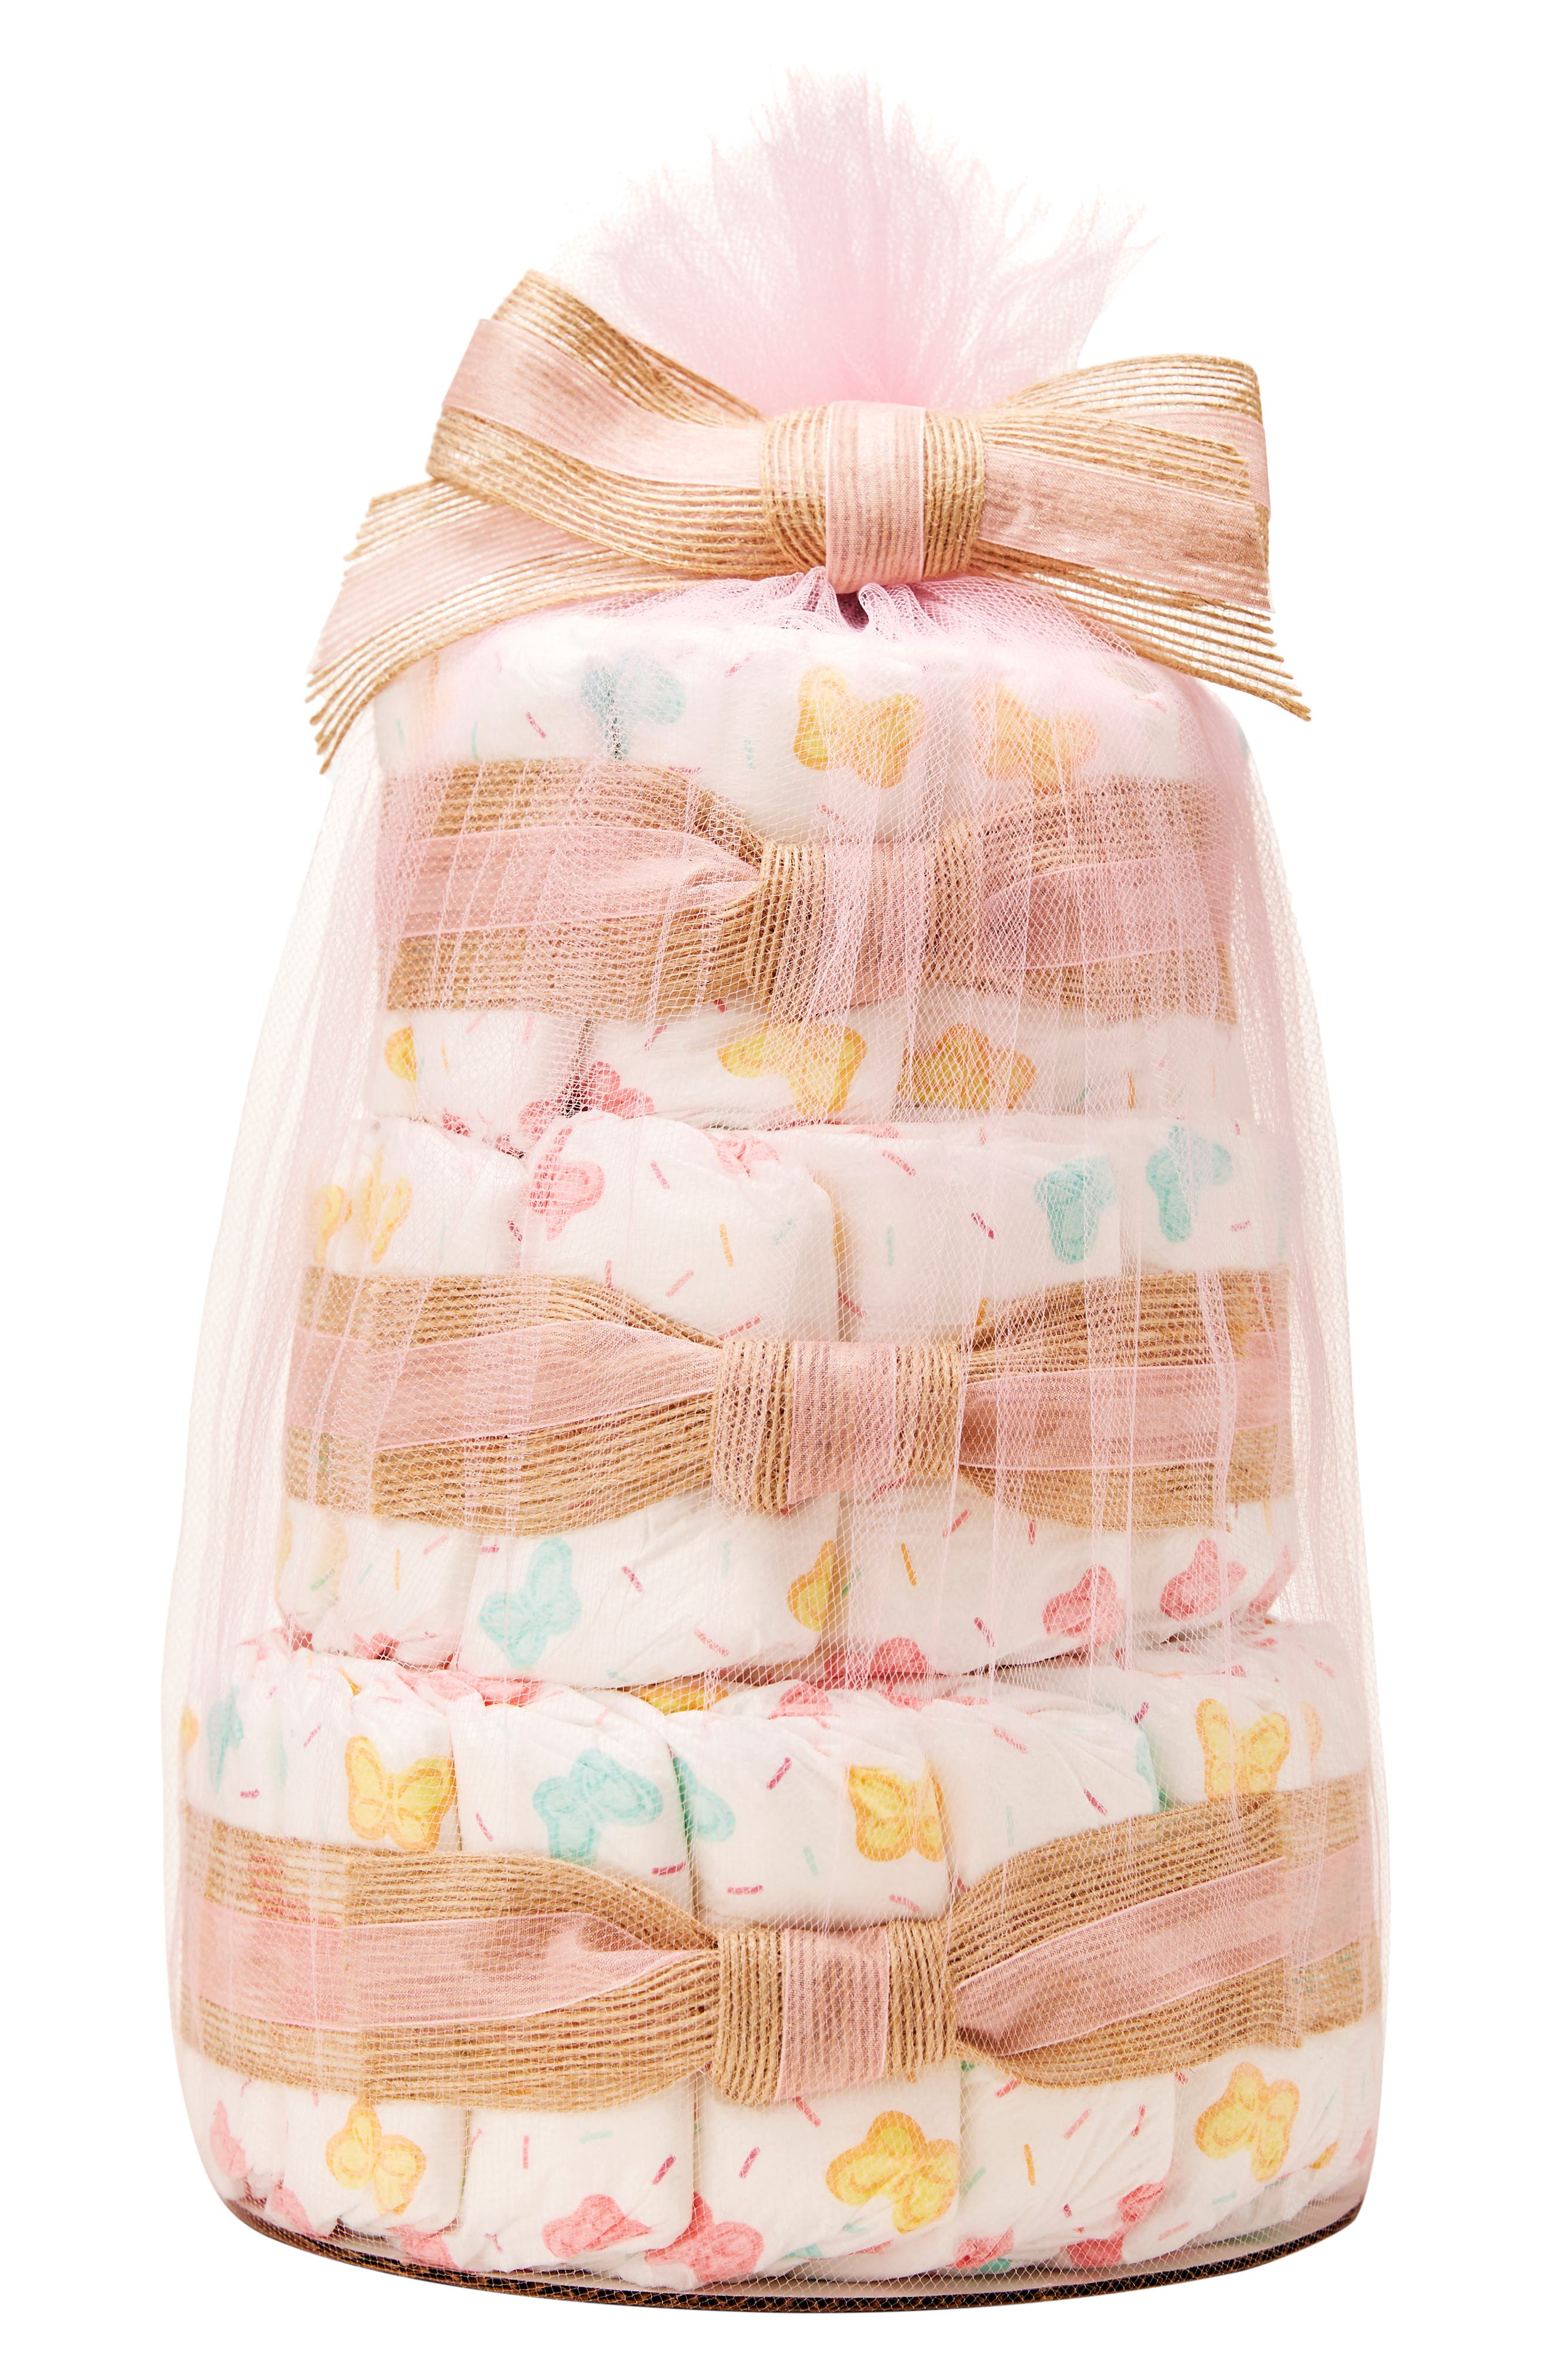 THE HONEST COMPANY x Sugarfina Sweet Thing Mini Diaper Cake, Main, color, 104